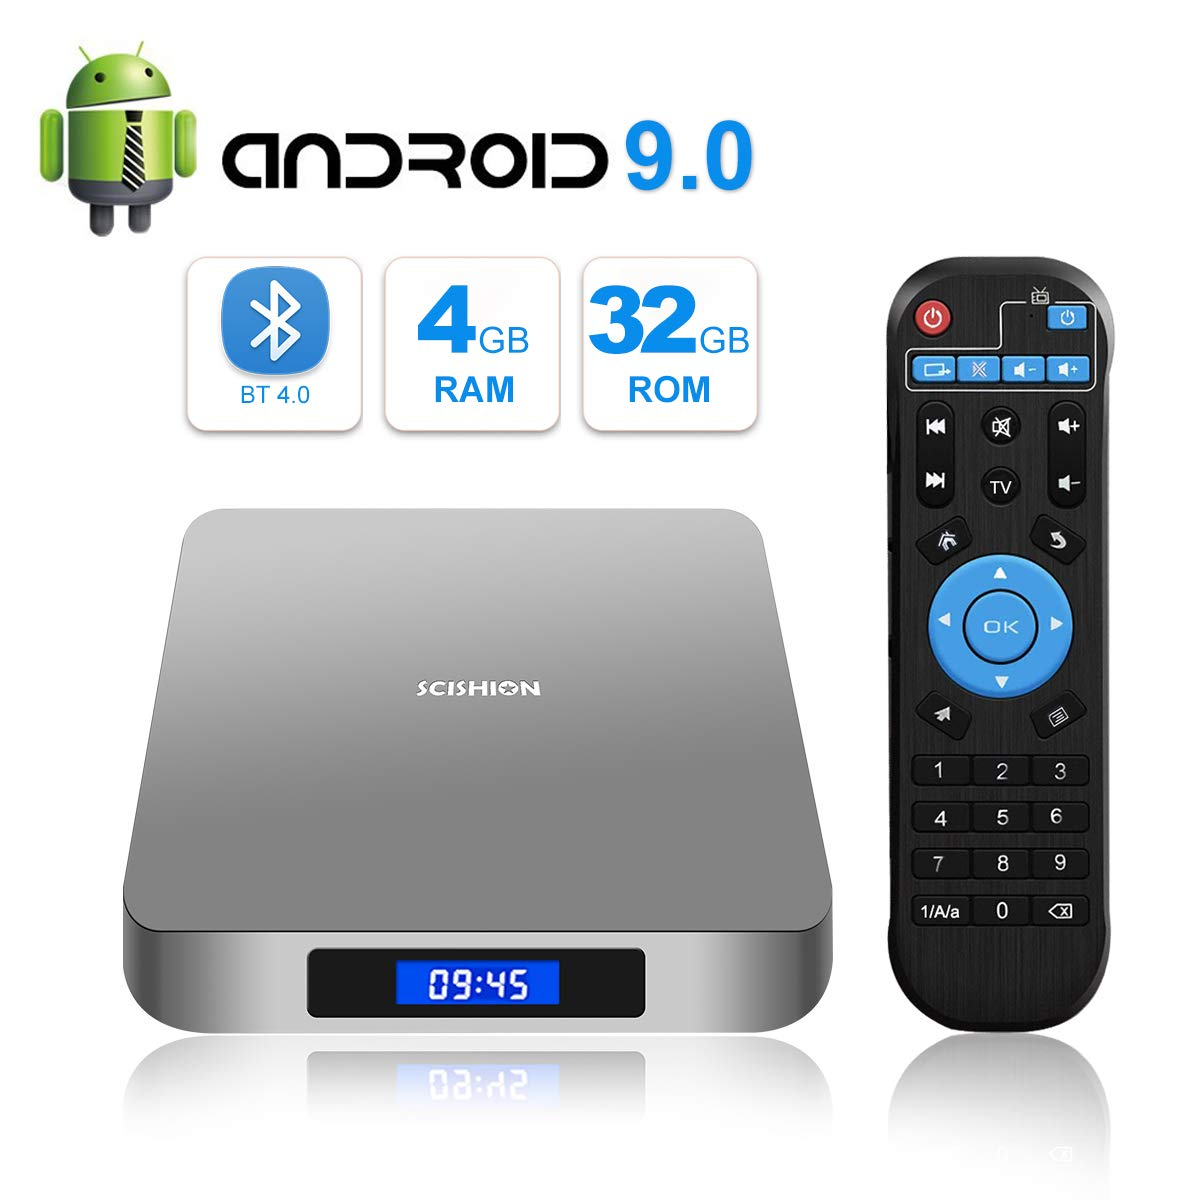 Android 9.0 TV Box, TUREWELL Android Box RK3328 Quad-core 64bit 4GB DDR3 32GB eMMC Memory Smart TV Box with Bluetooth 4.0 WiFi Ethernet HDMI HD 4K Media Player Set Top Box